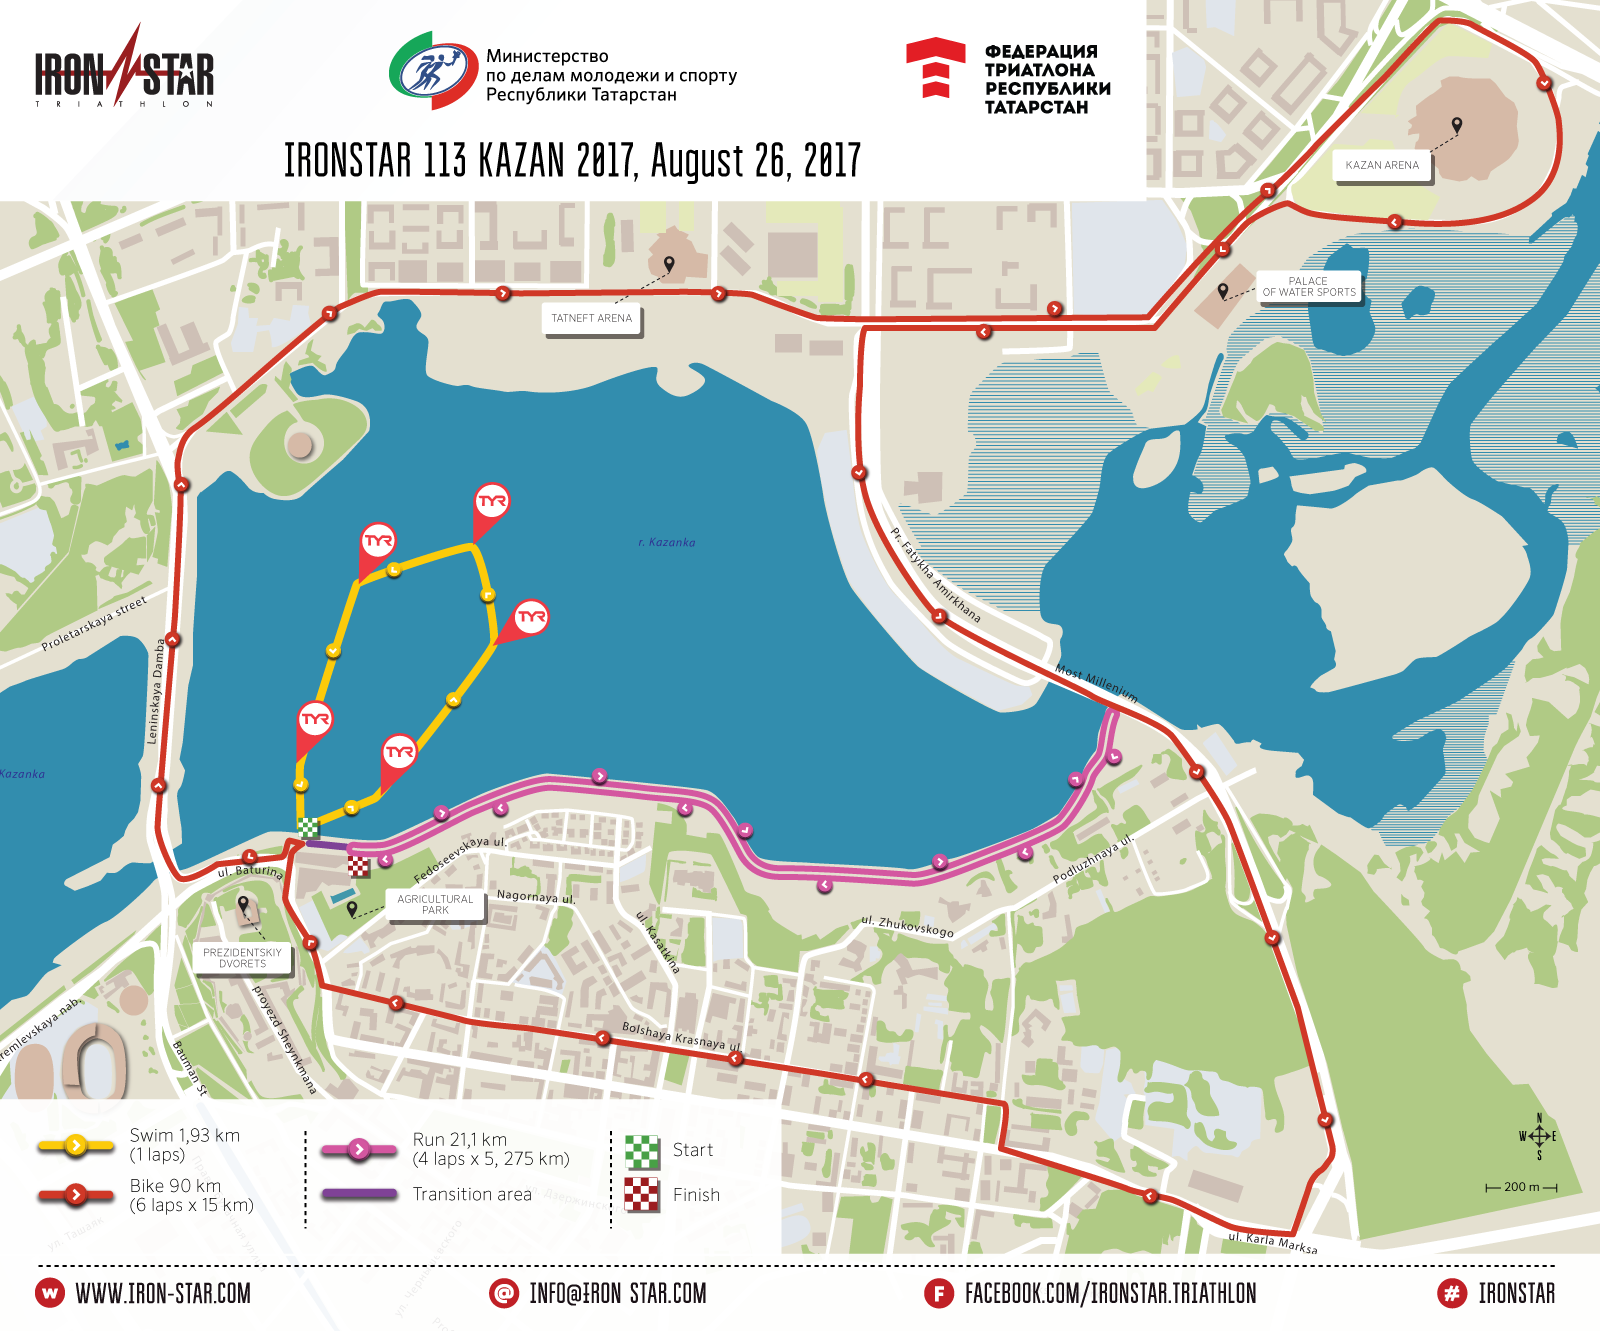 Route of IRONSTAR 113 KAZAN 2017